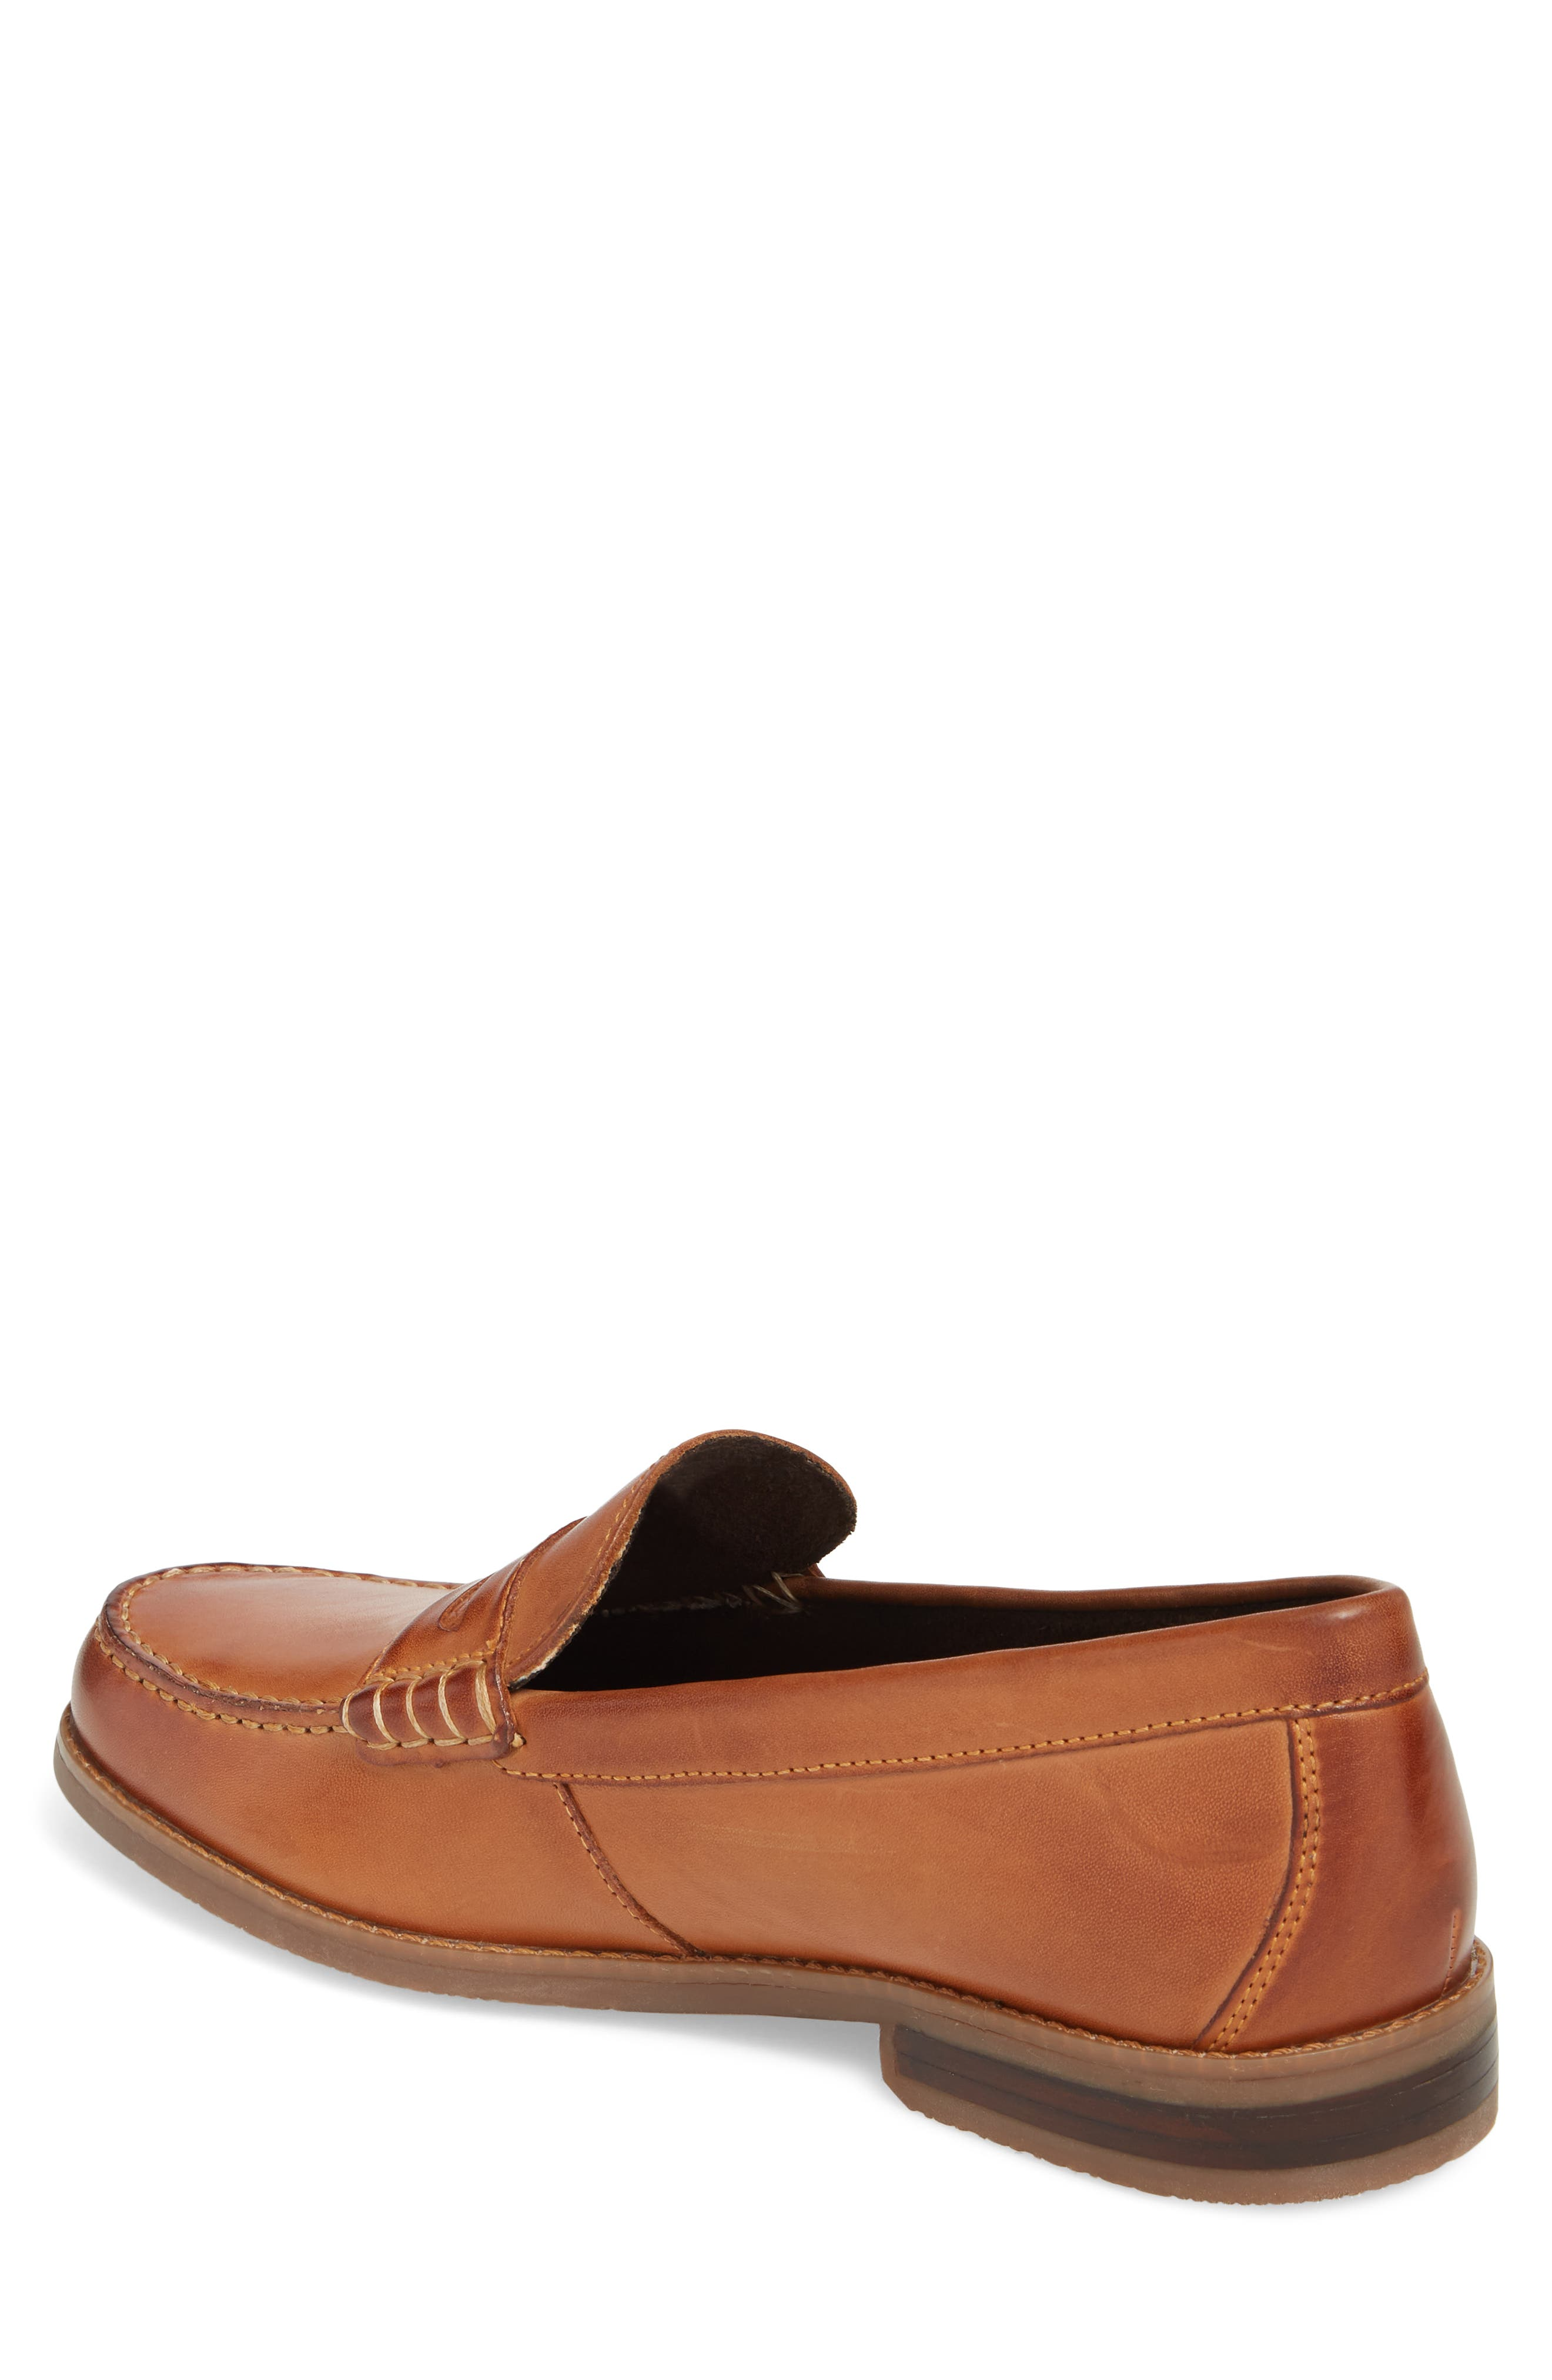 Cayleb Moc Toe Penny Loafer,                             Alternate thumbnail 2, color,                             Cognac Leather